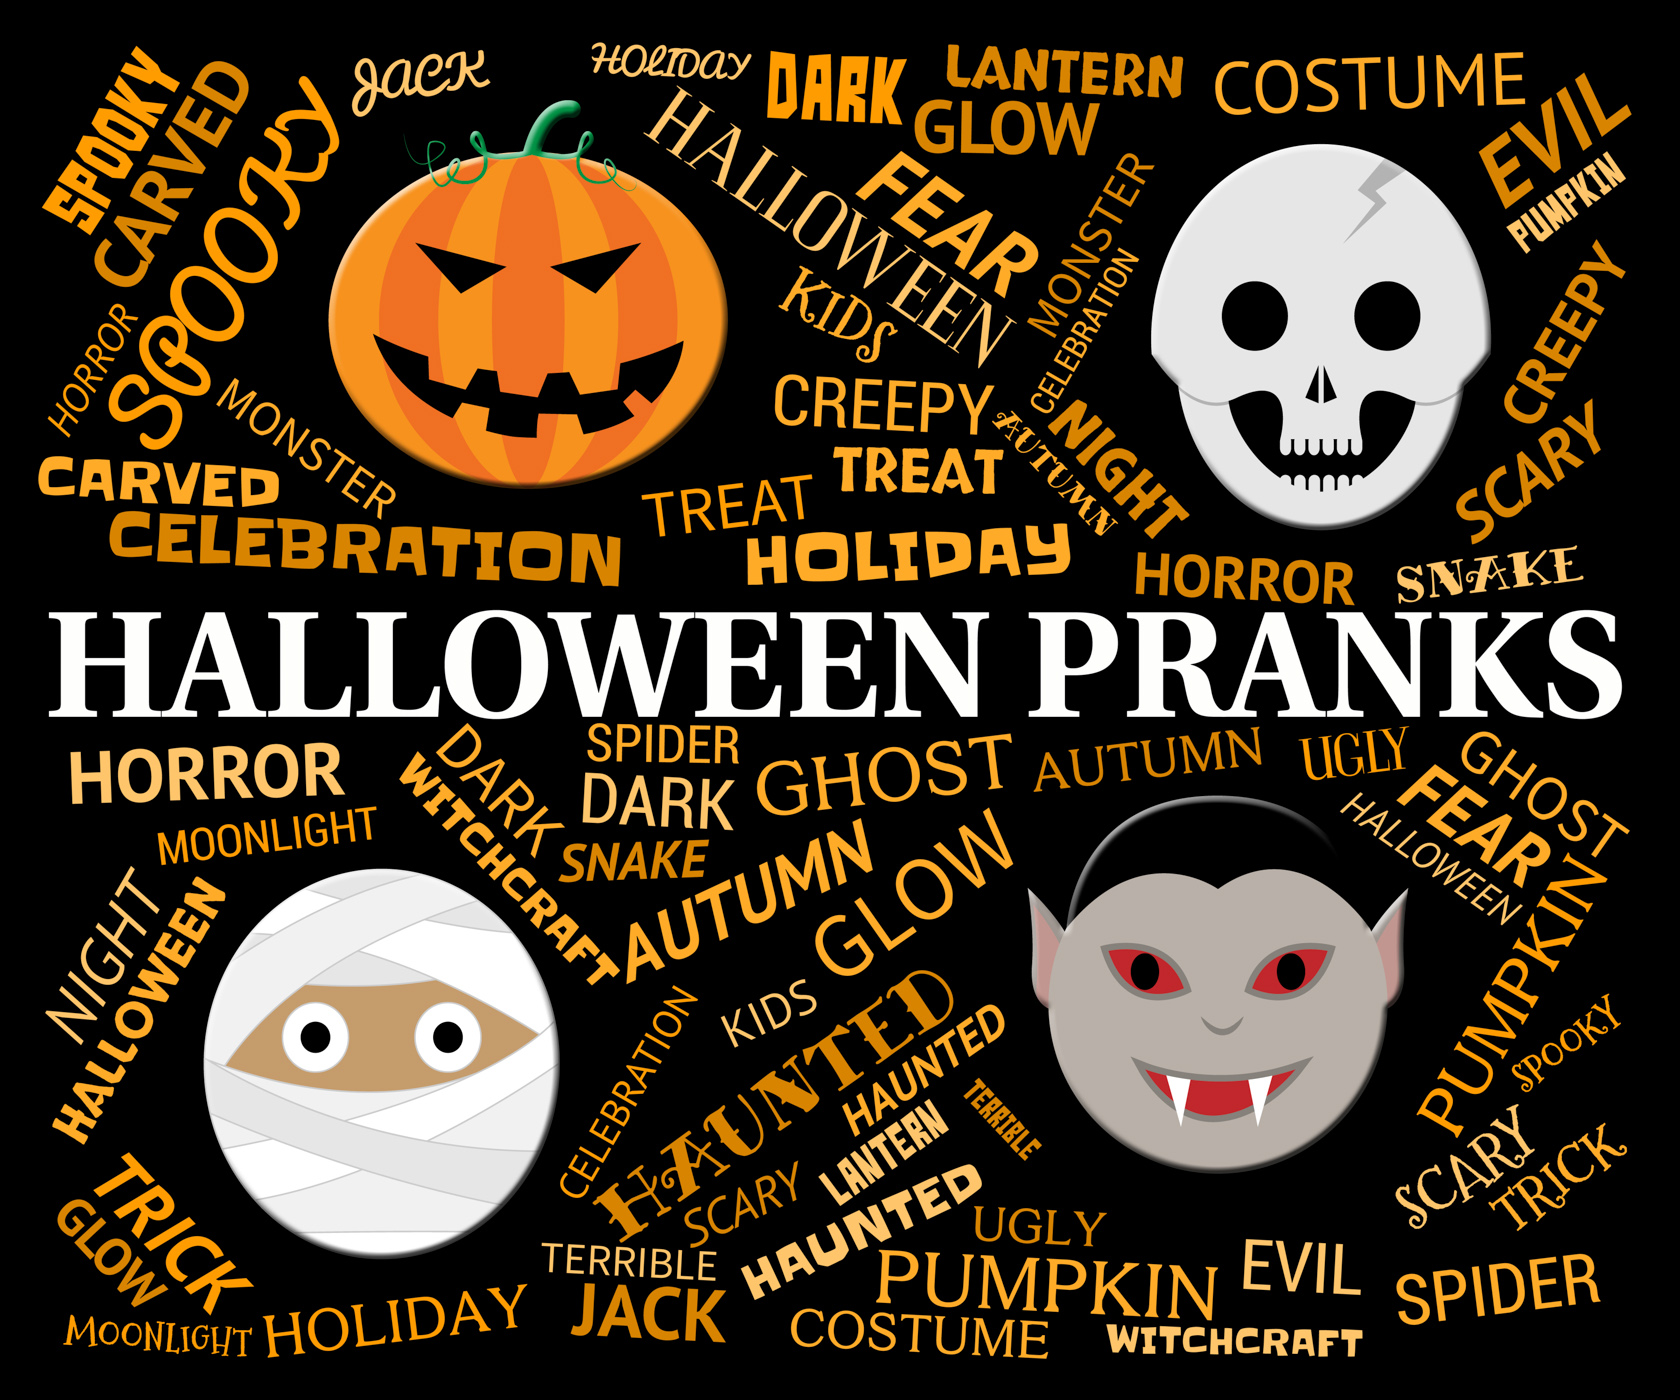 Halloween Pranks Represents Trick Or Treat And Autumn, Autumn, Humorous, Trick, Spooky, HQ Photo